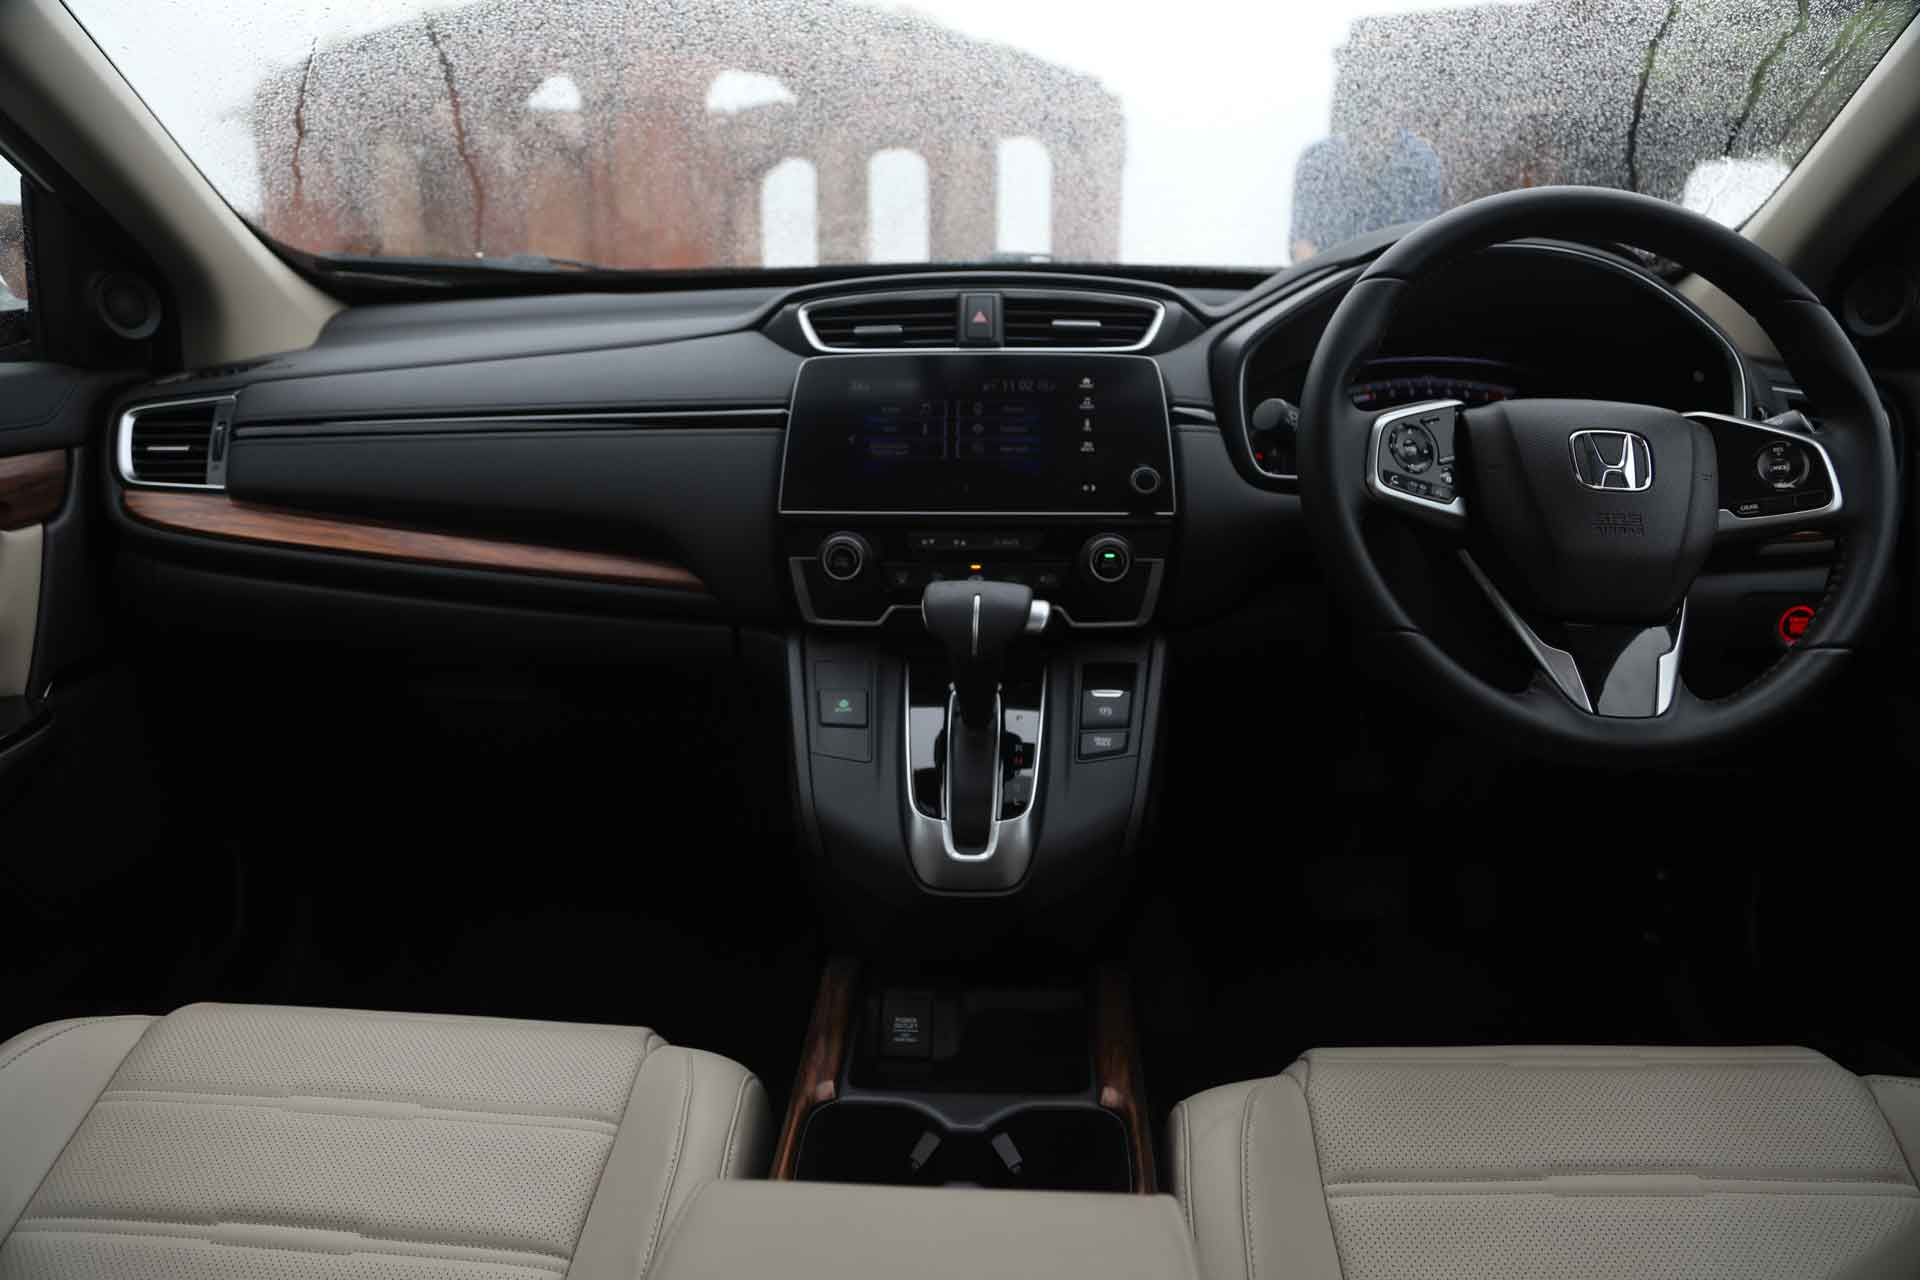 Honda CR-V Petrol Review